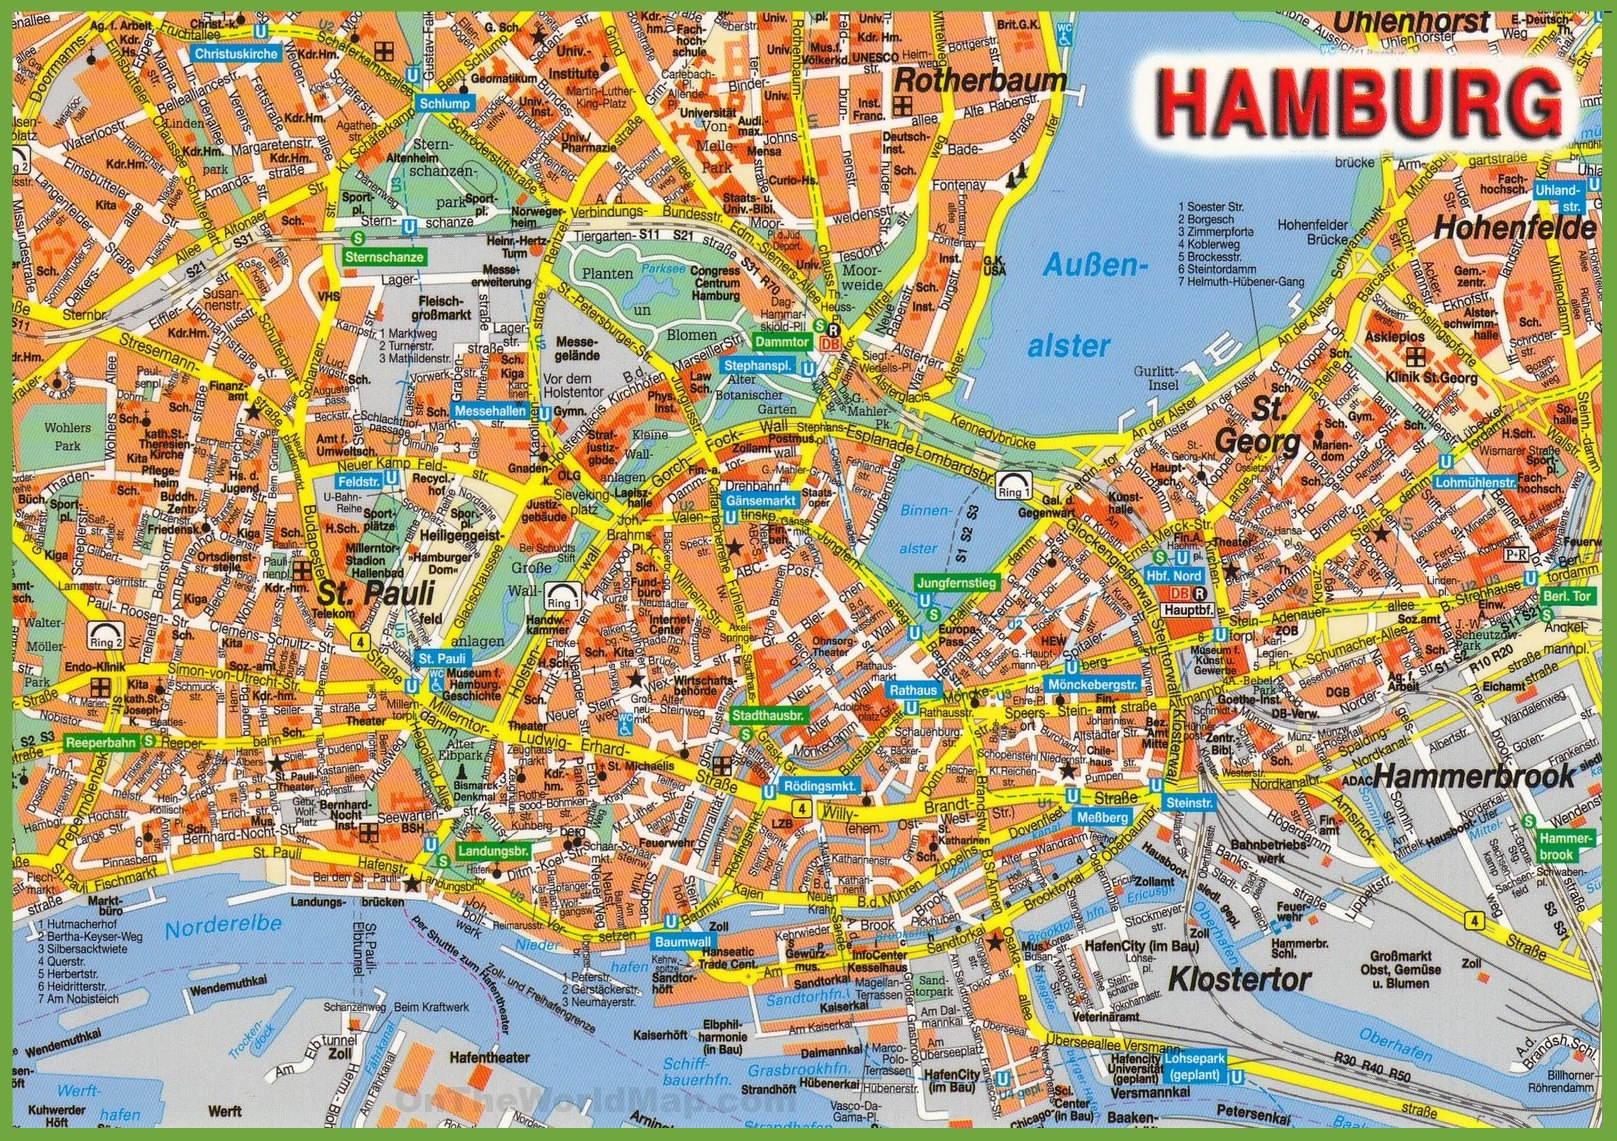 Hamburg tourist attractions map – Tourist Attractions Map In Jamaica